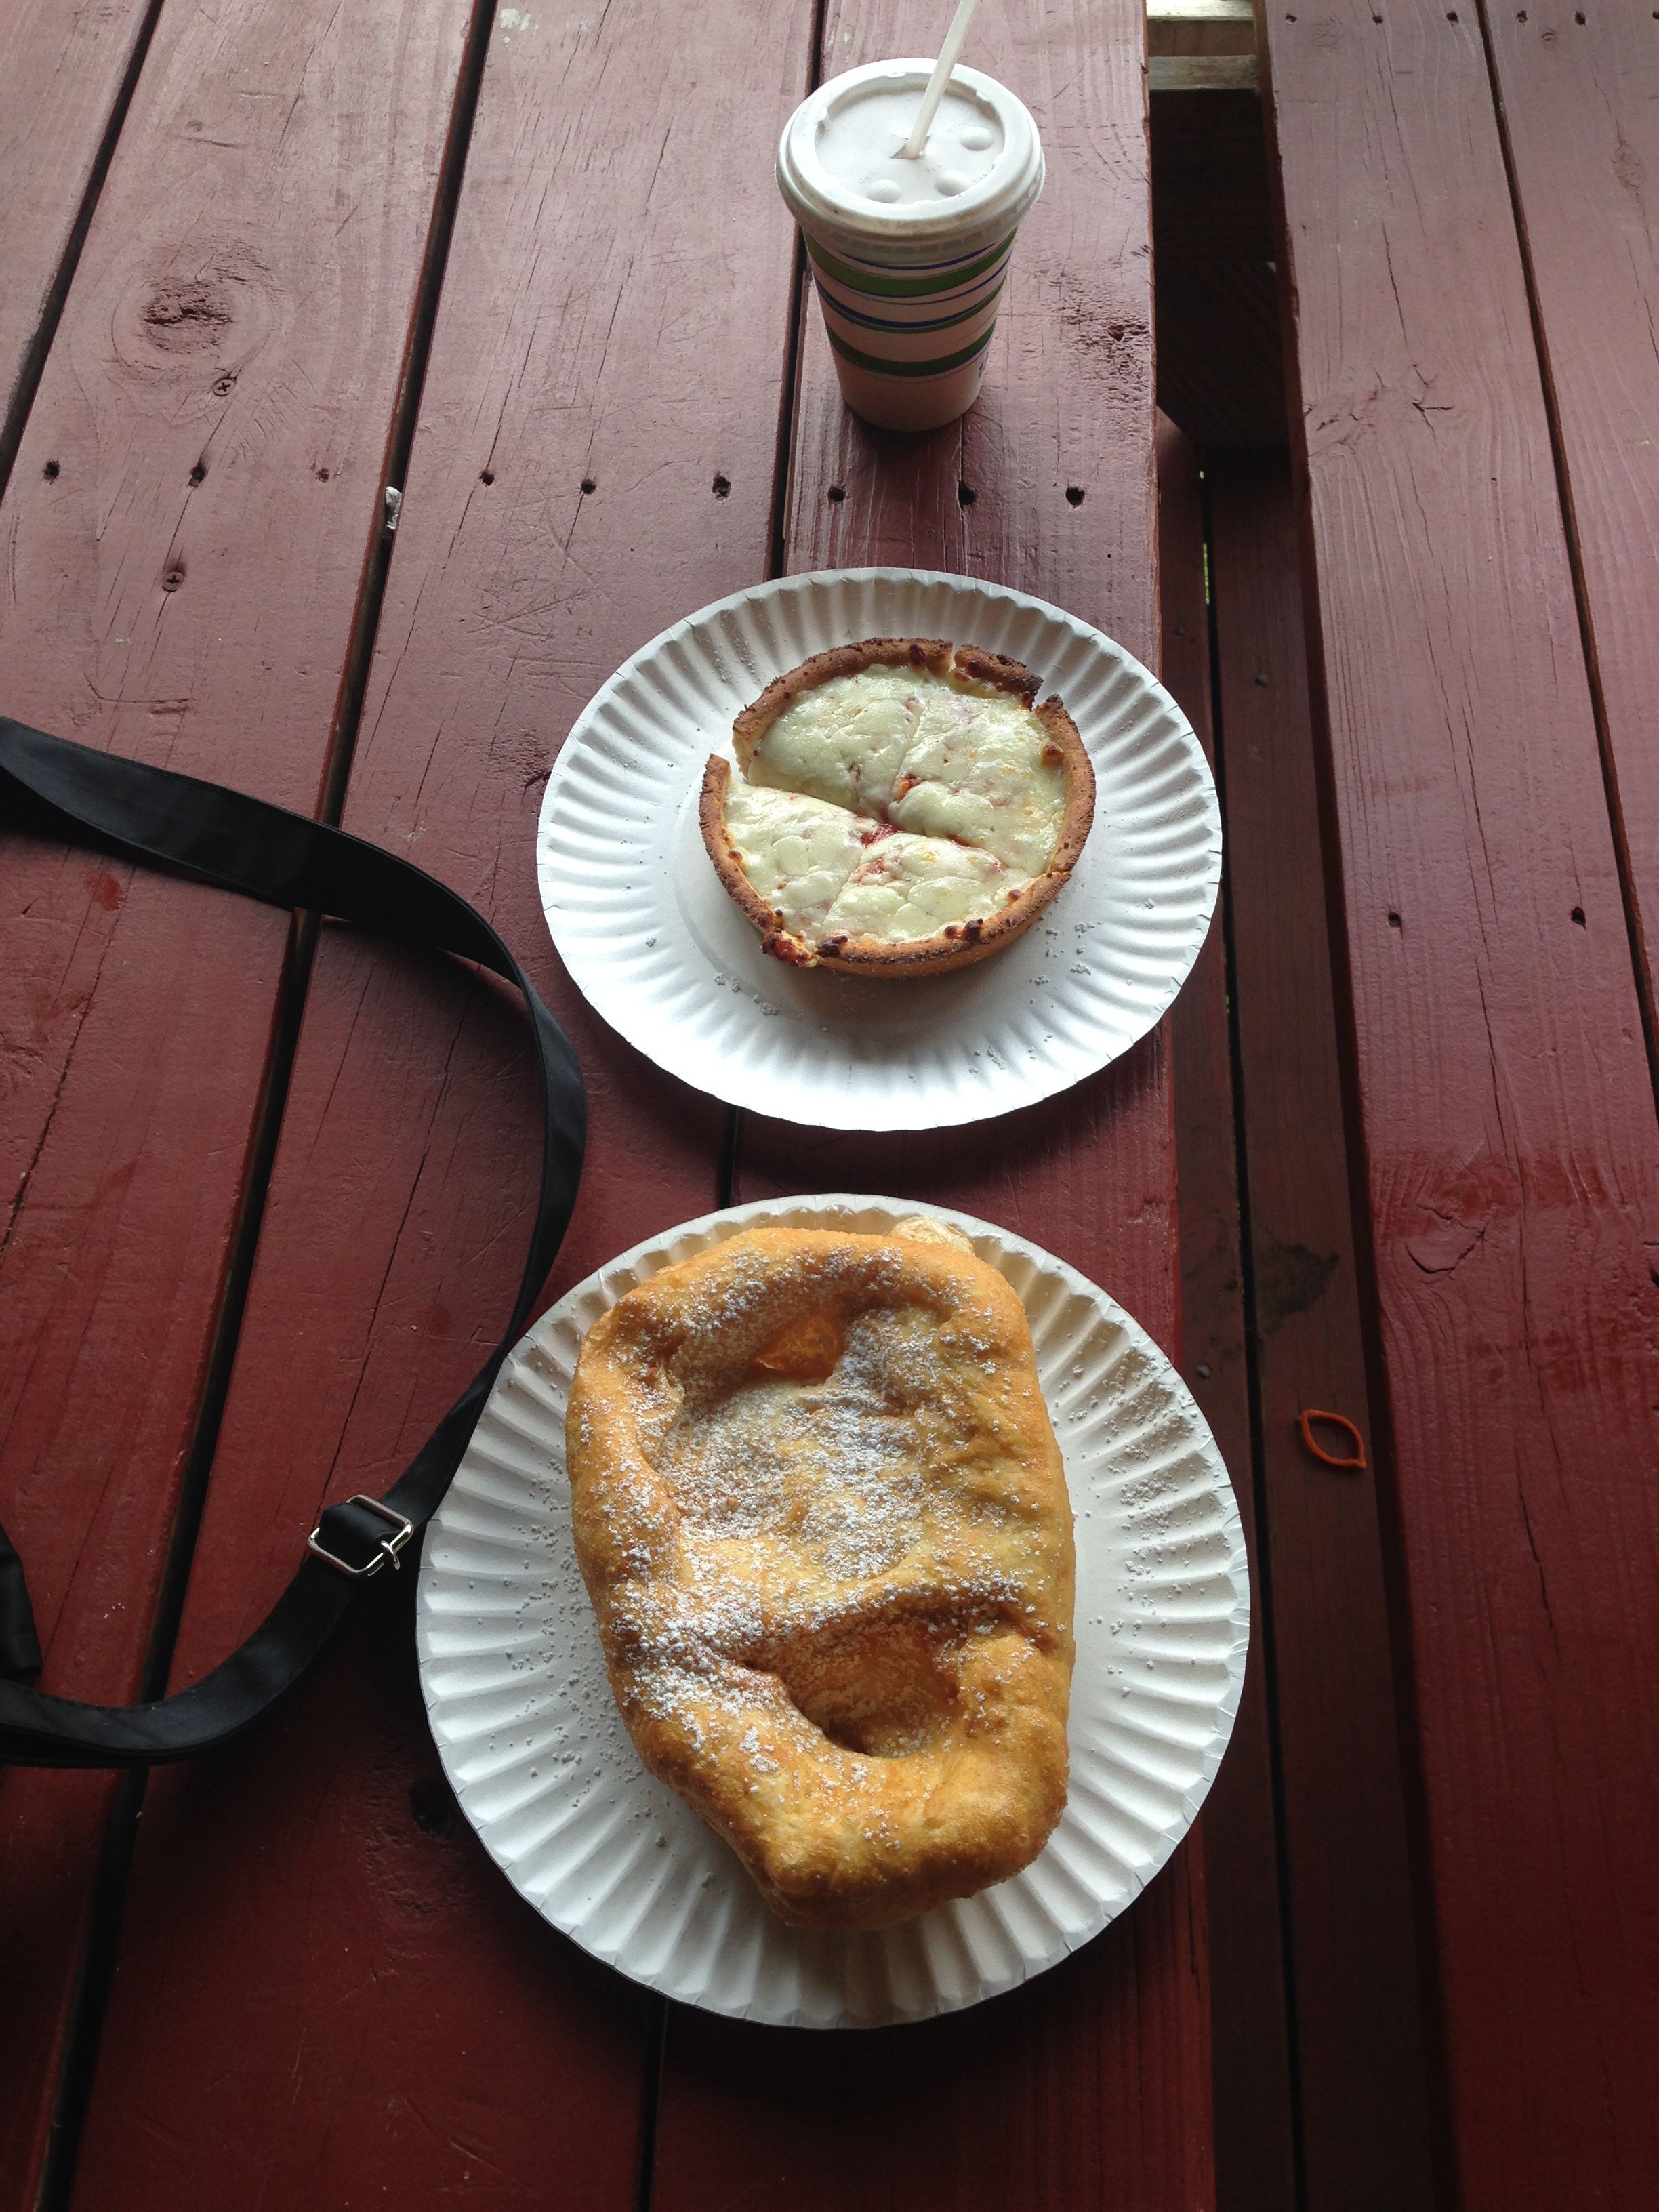 Fried Dough and pizza from the Farm upstate!!!